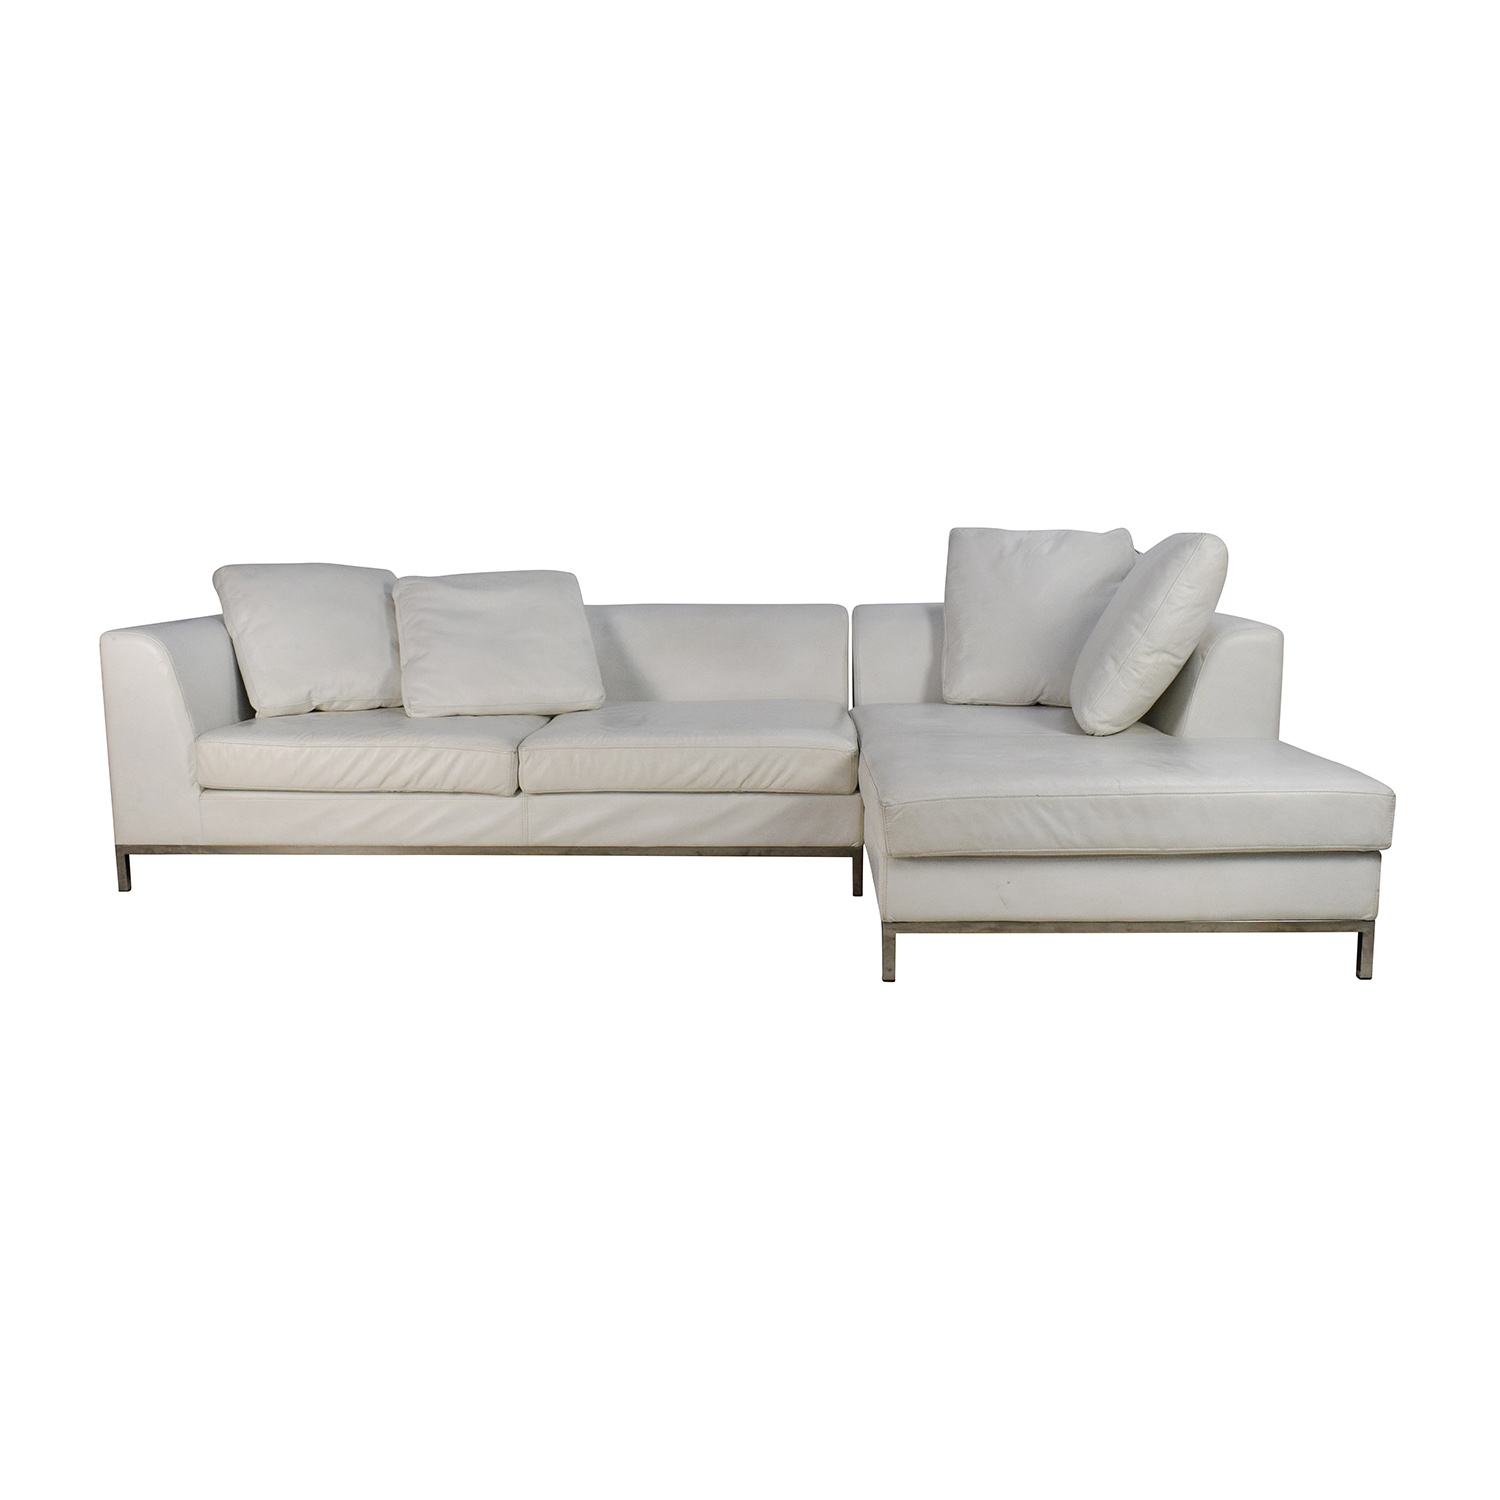 White Leather Sectional Sofa Bed: White Leather Sectional Couch / Sofas